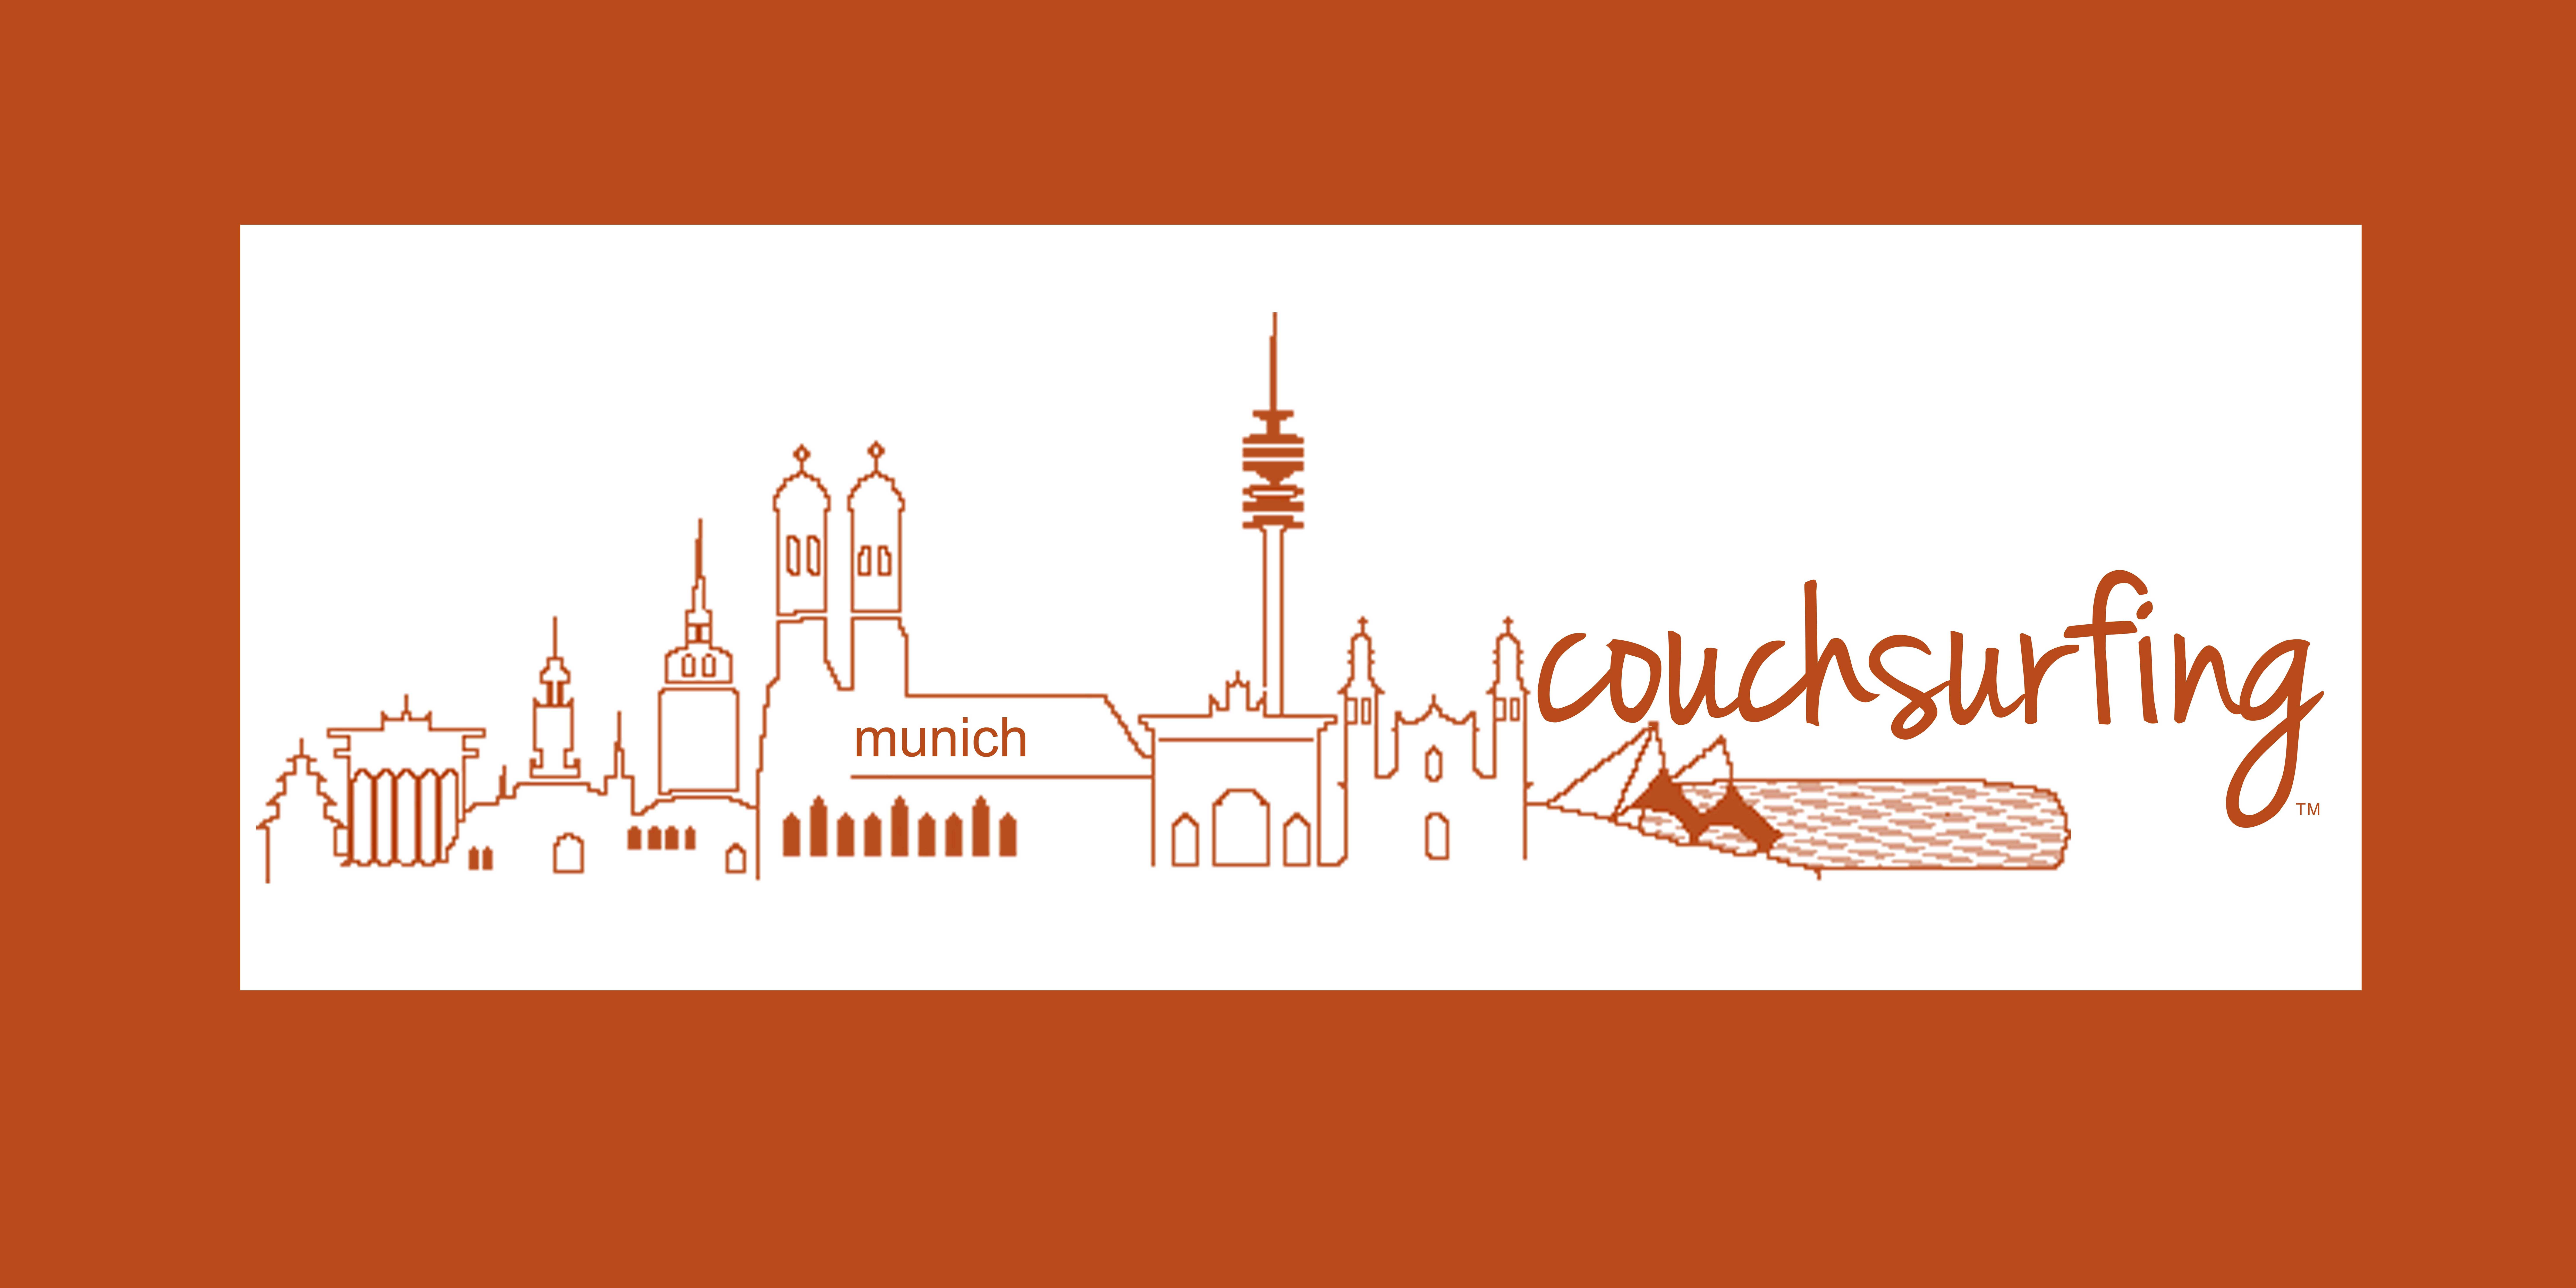 munich 39 s weekly tuesday meeting m nchen bayern germany couchsurfing. Black Bedroom Furniture Sets. Home Design Ideas